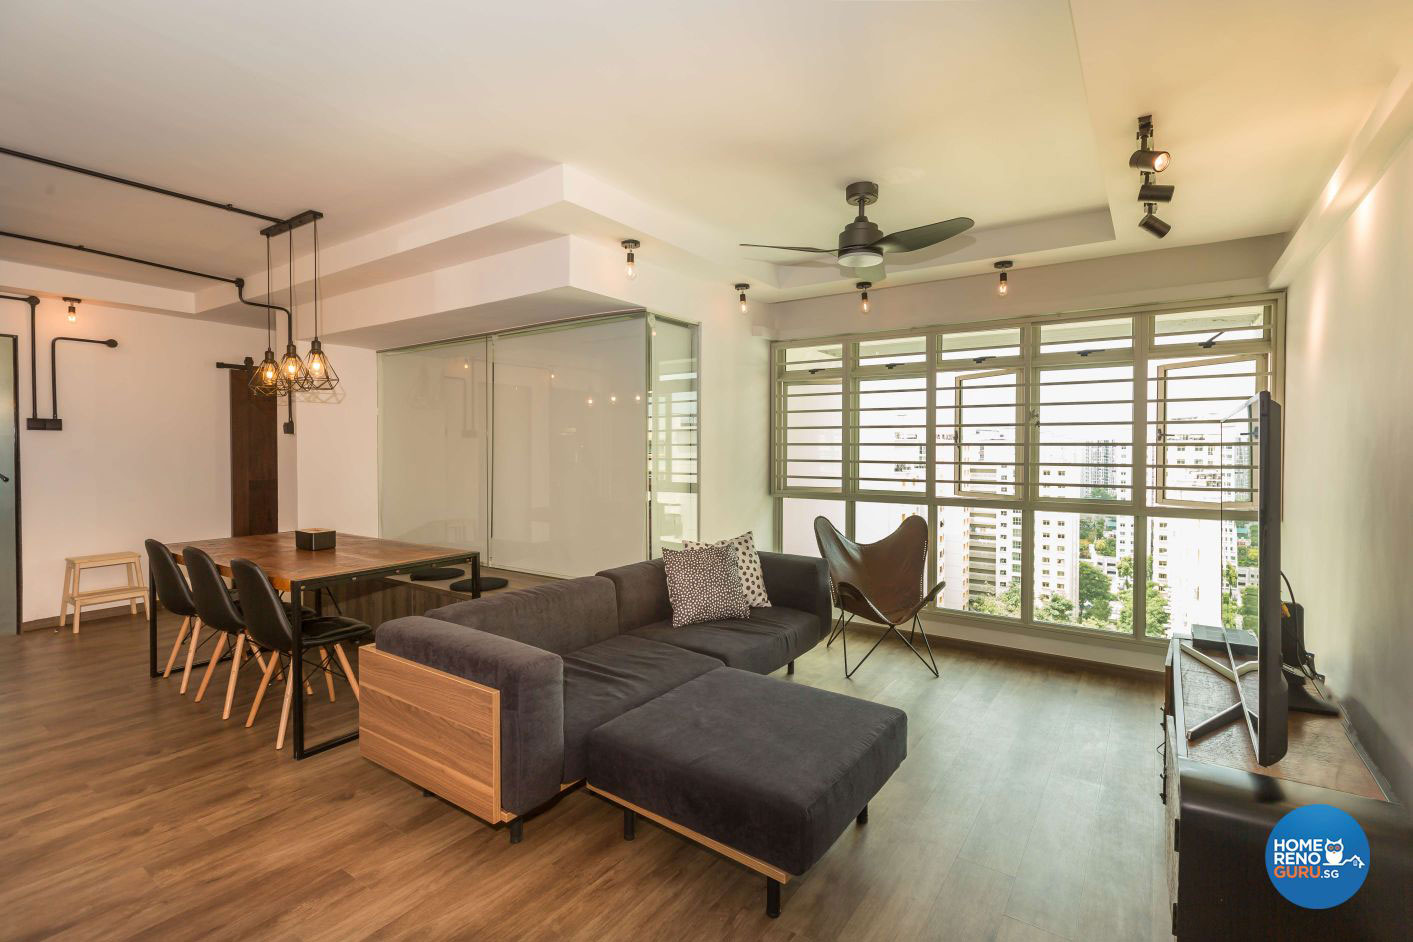 5 room hdb residential fengshui analysis new